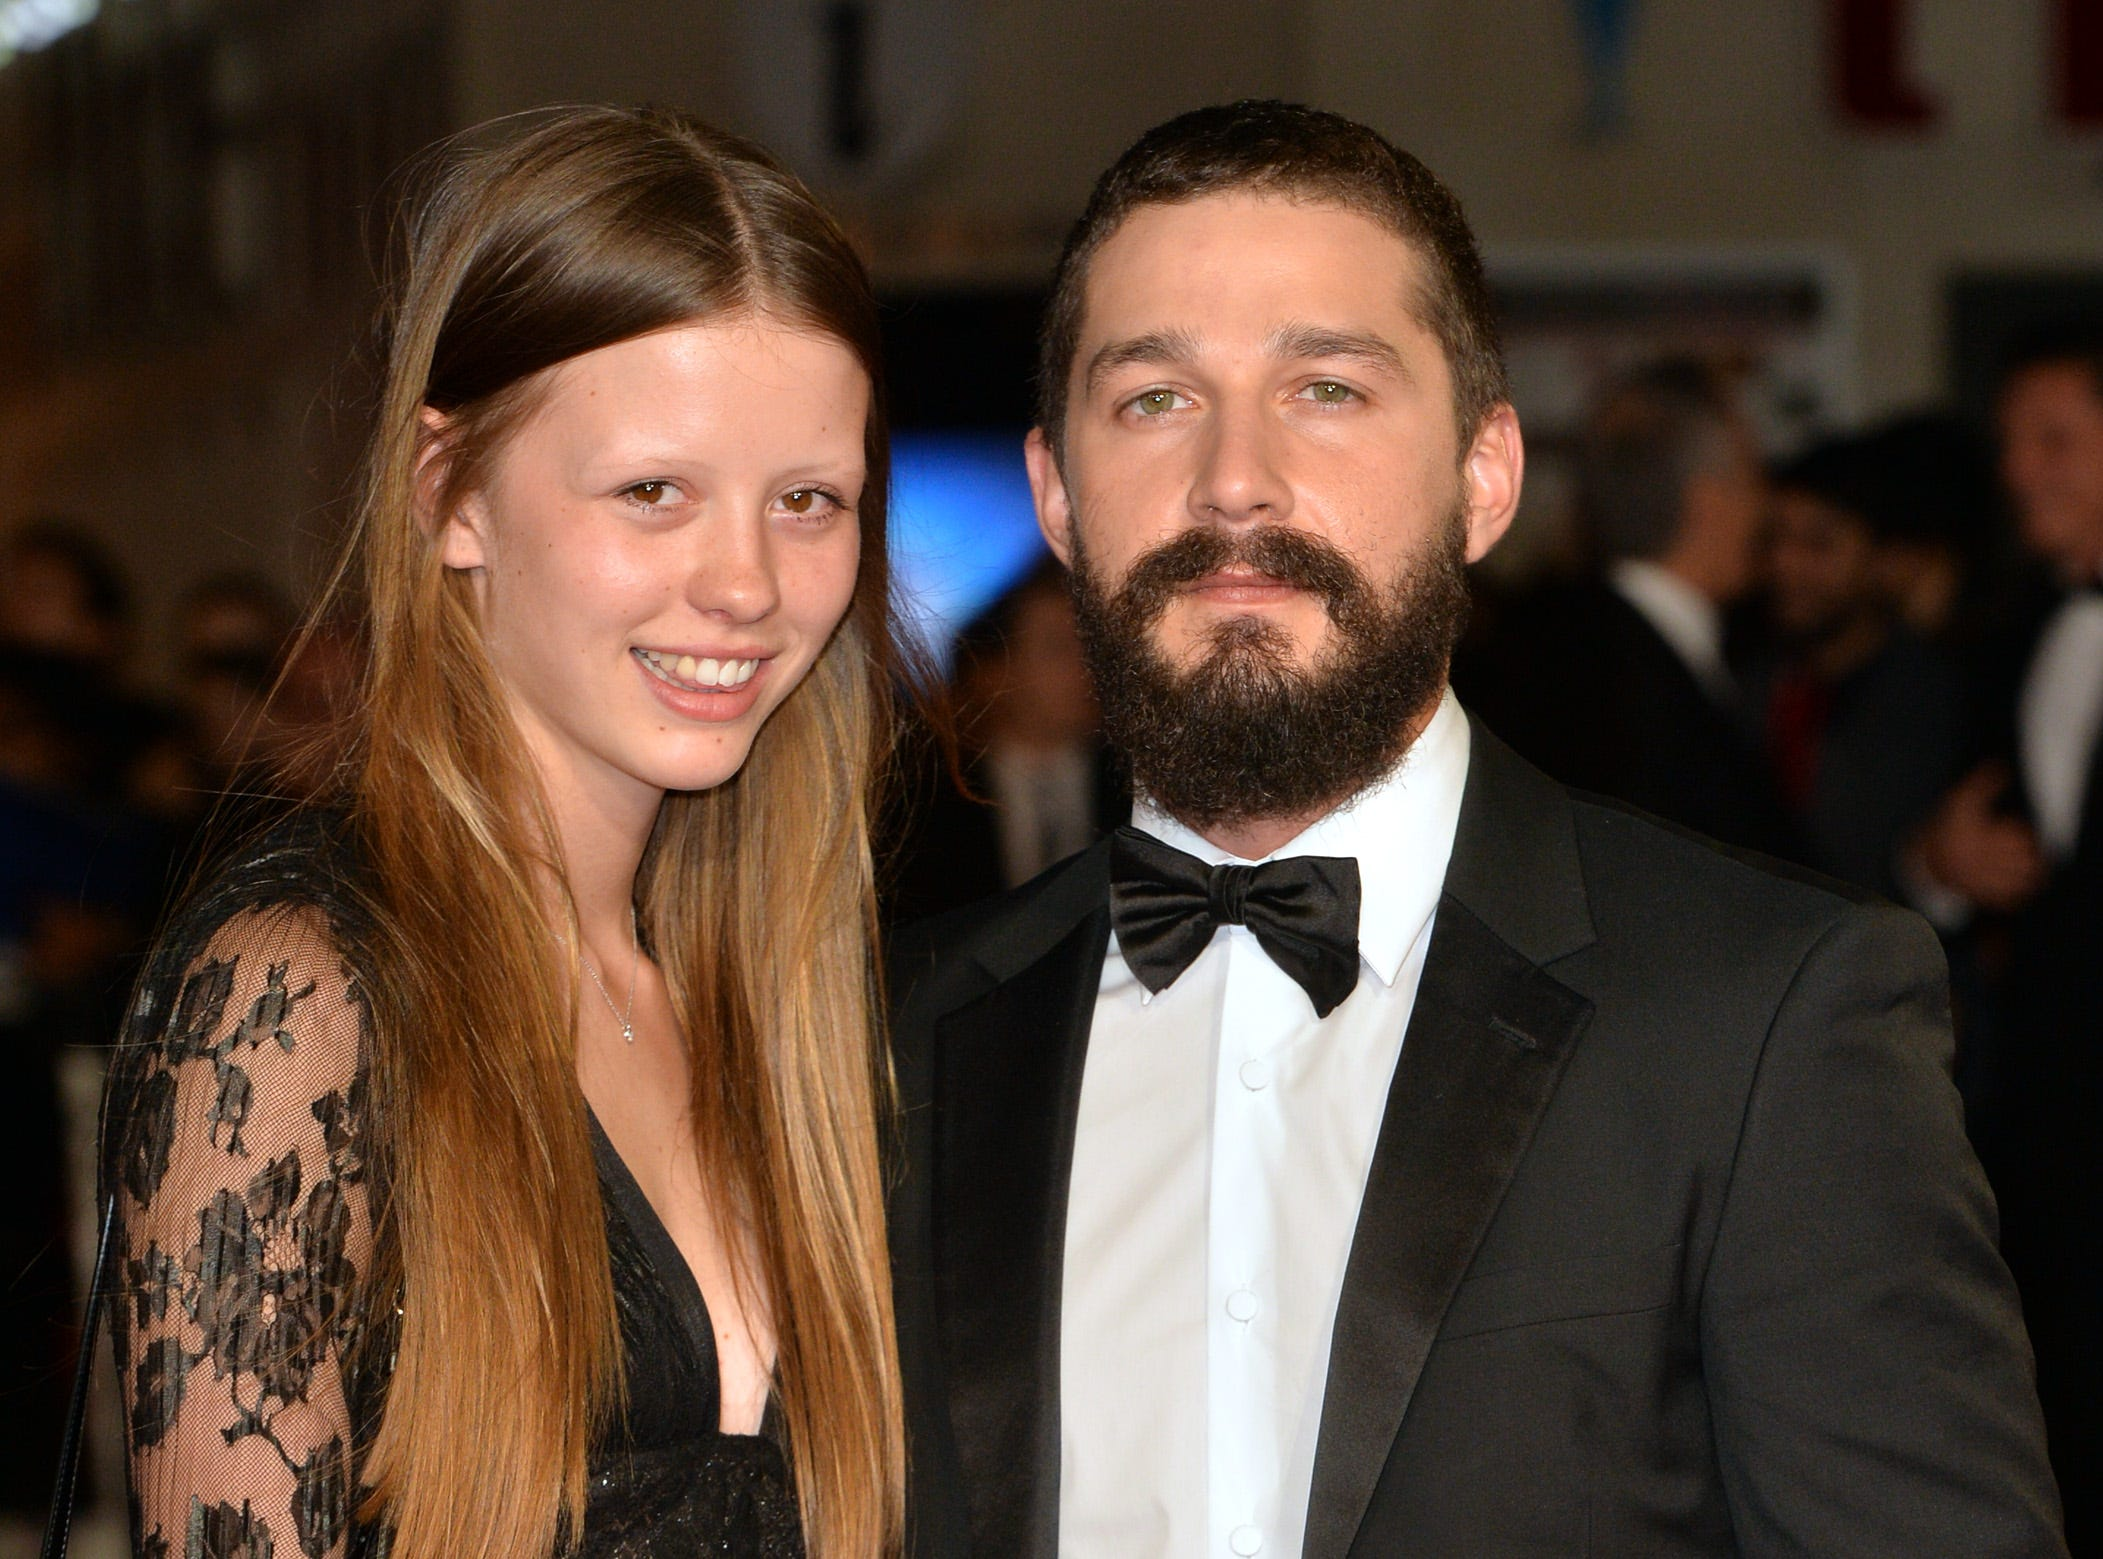 "LONDON, ENGLAND - OCTOBER 19:  Mia Goth and Shia LeBeouf attend the closing night European Premiere gala red carpet arrivals for ""Fury"" during the 58th BFI London Film Festival at Odeon Leicester Square on October 19, 2014 in London, England.  (Photo by Anthony Harvey/Getty Images for BFI) ORG XMIT: 517156461 [Via MerlinFTP Drop]"